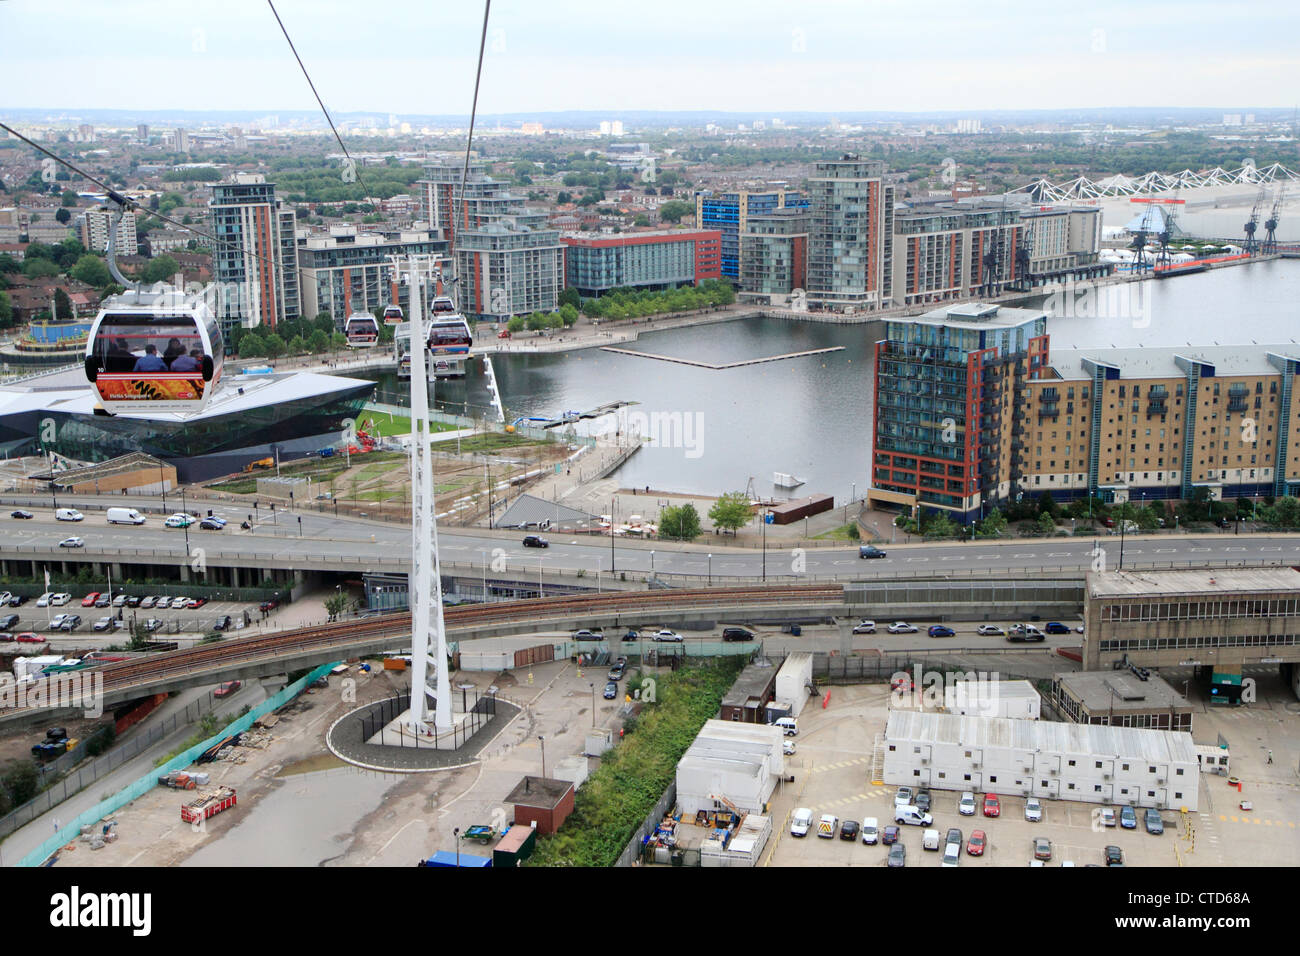 Royal Victoria dock from Emirates Air Line cable car, Docklands, London, UK - Stock Image